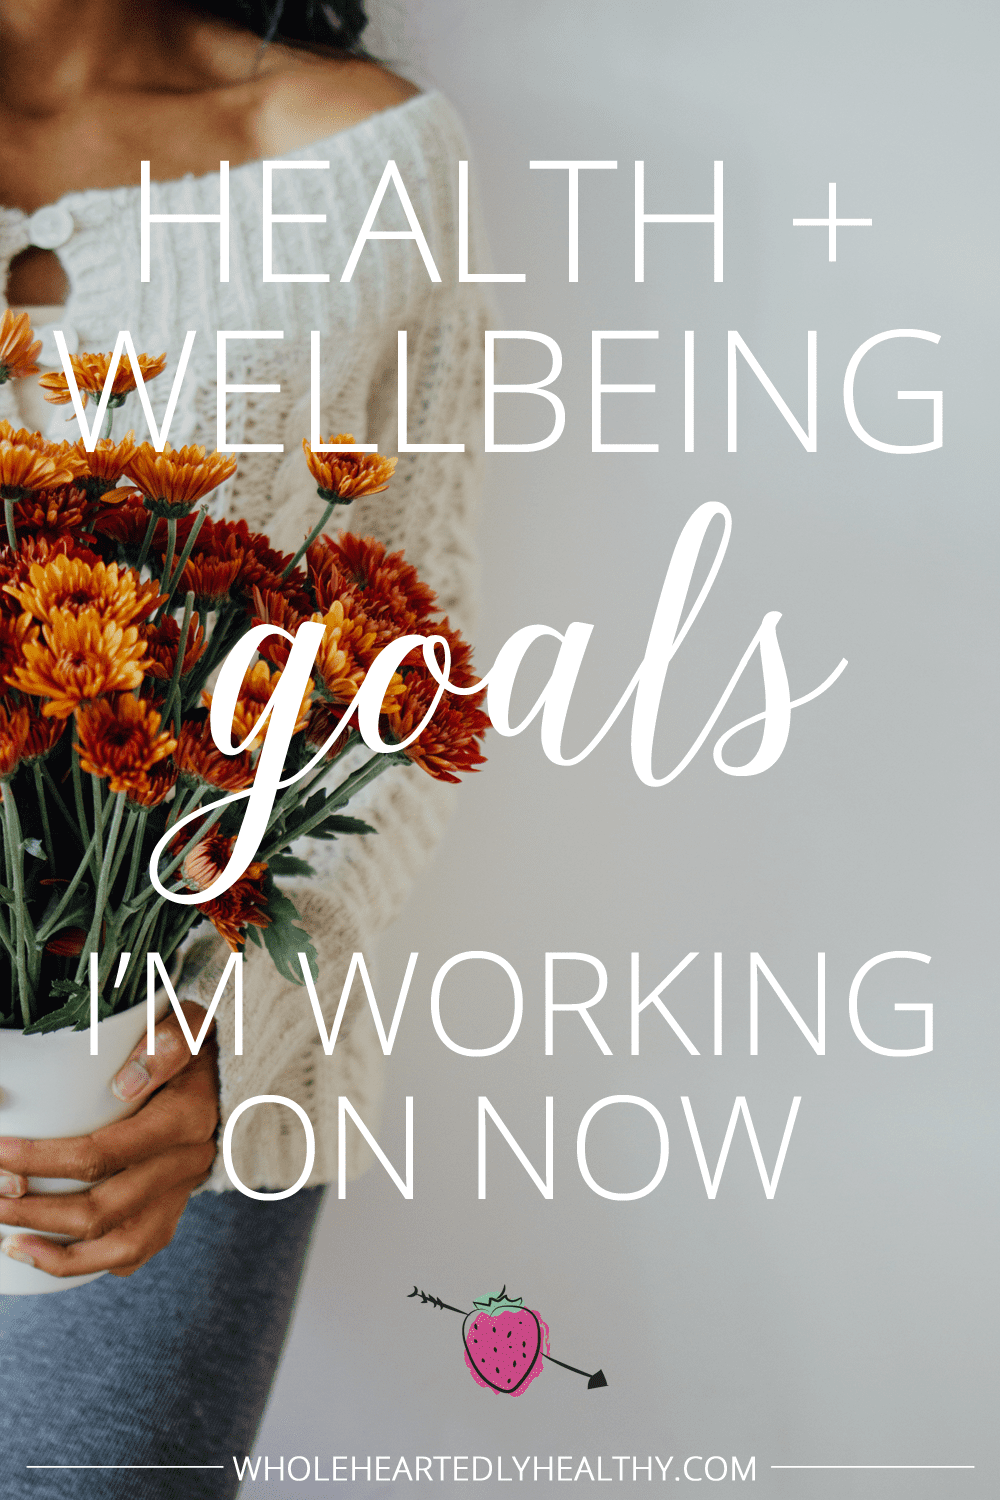 Health and wellbeing goals I m working on now